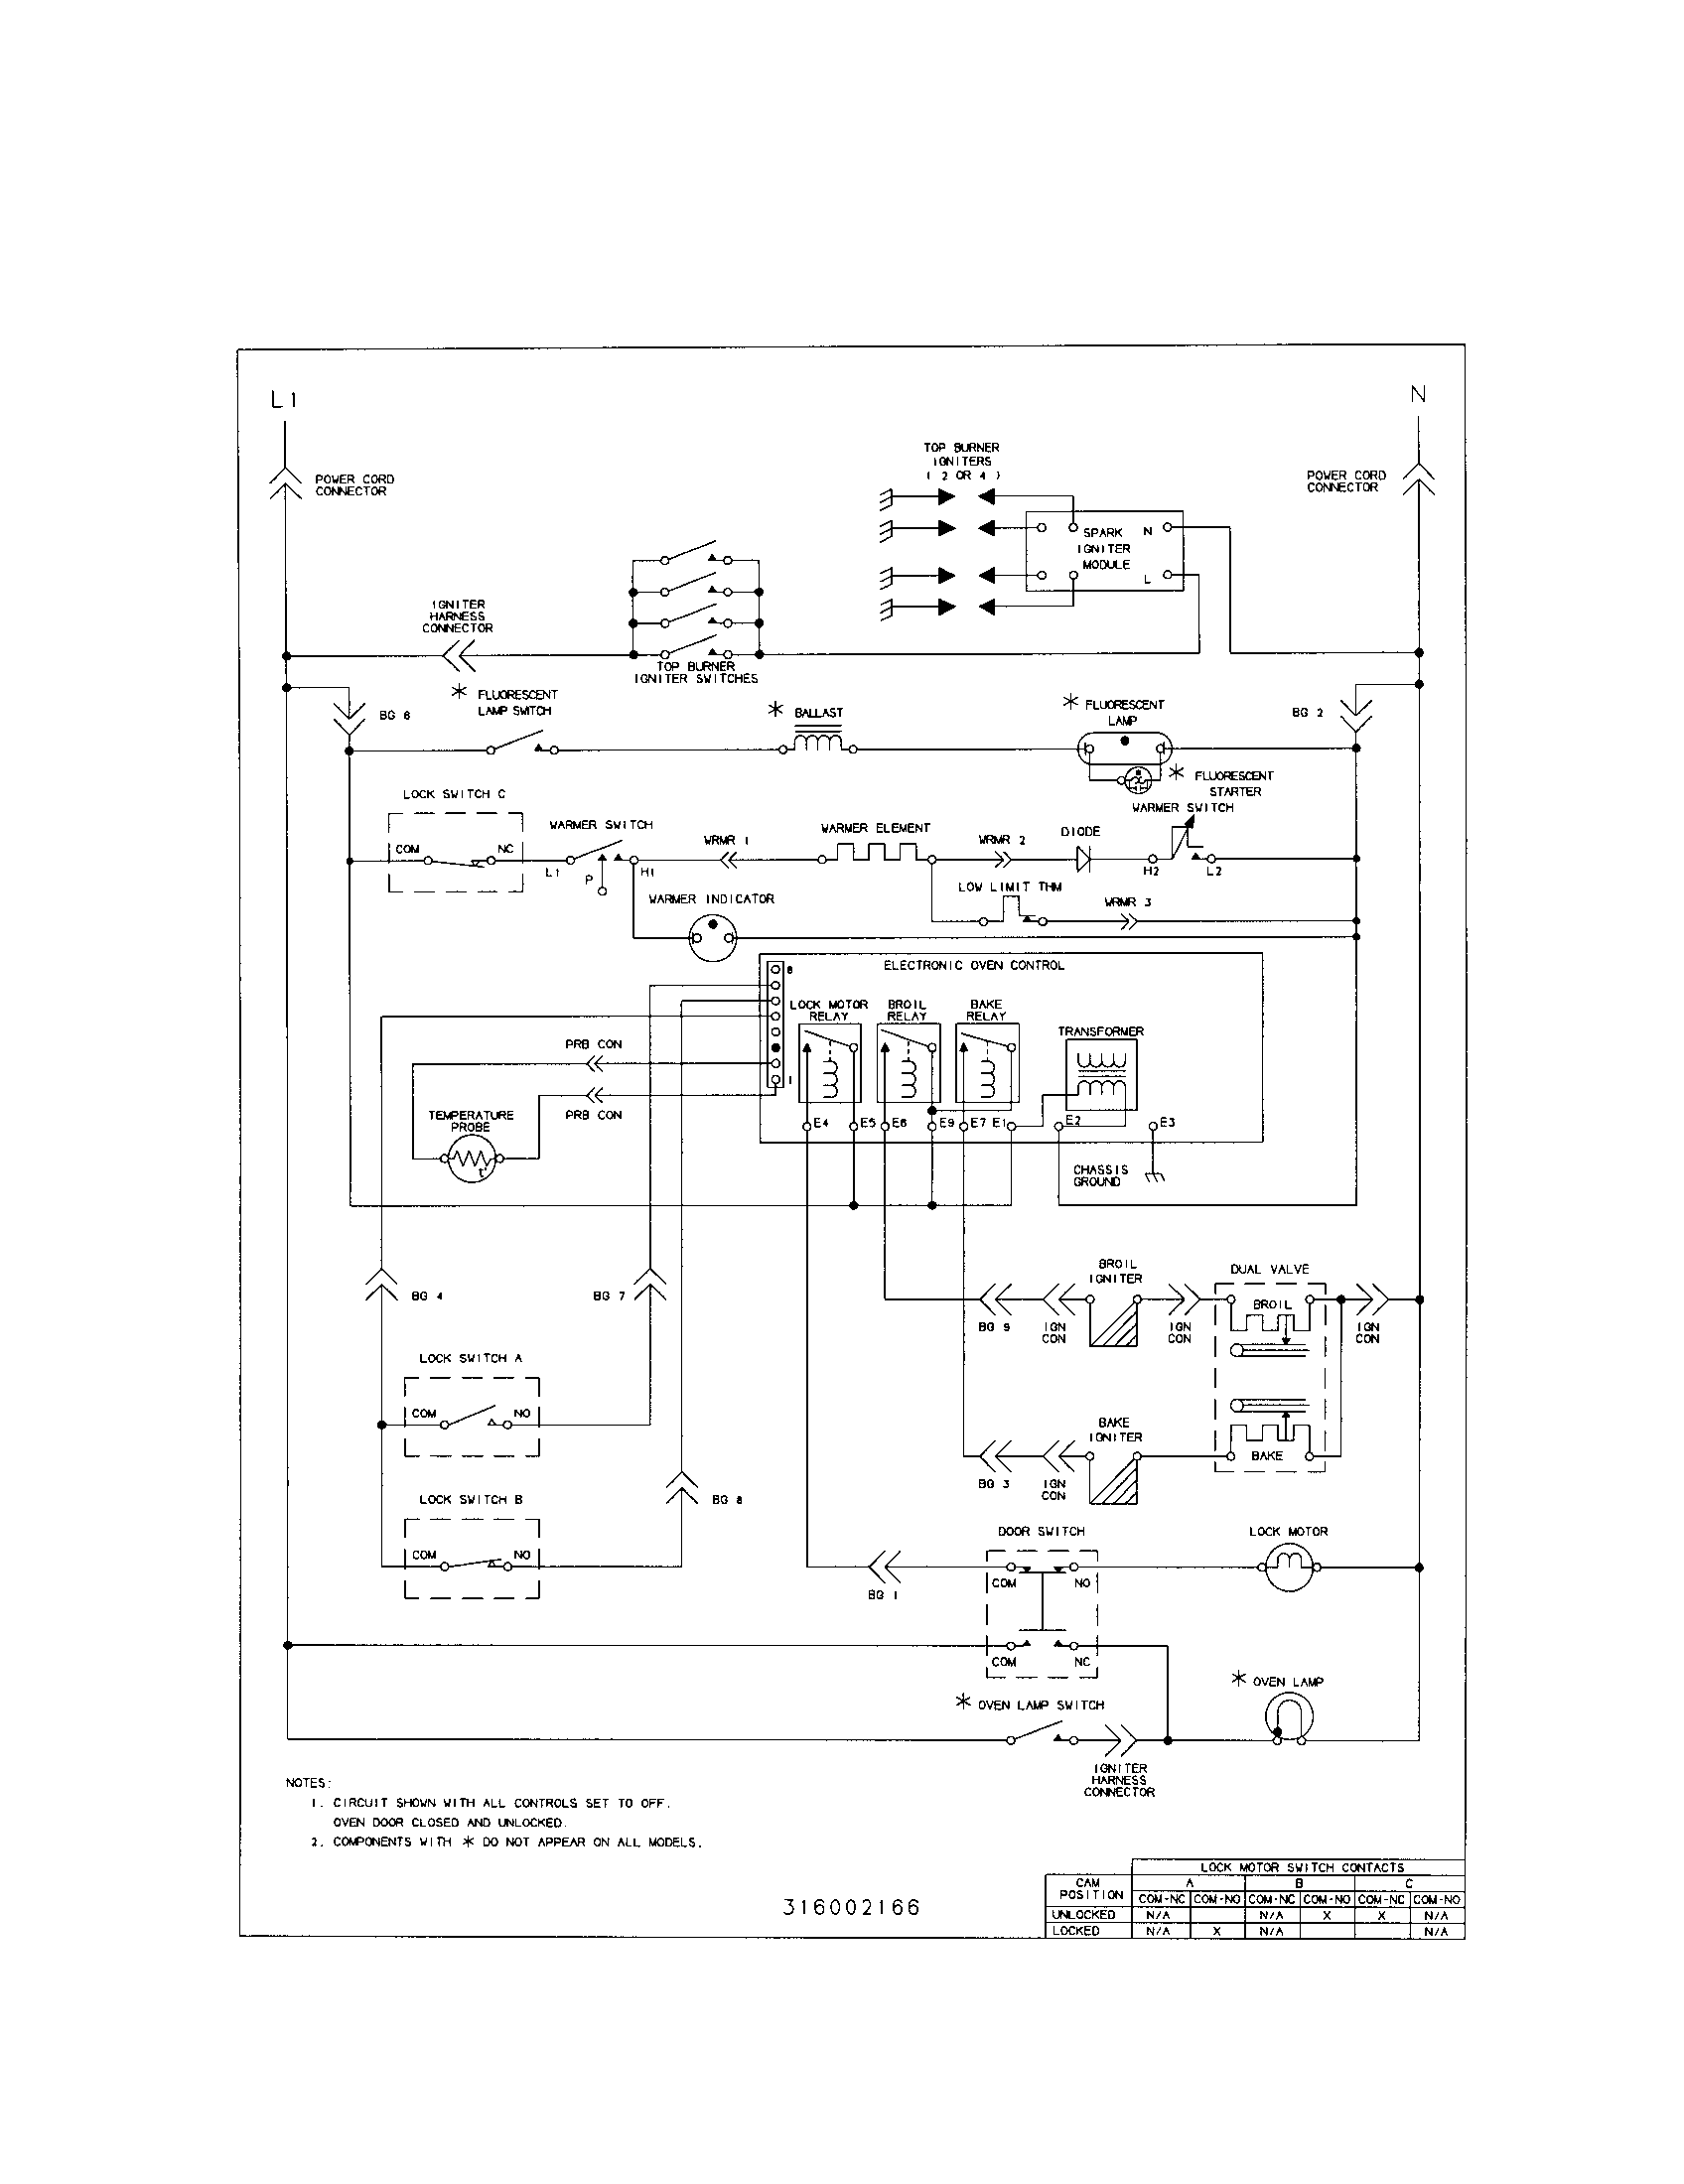 Frigidaire Range Wiring Diagram Smart Diagrams Stove Fgf379wecs Timer Clocks And Top Electric